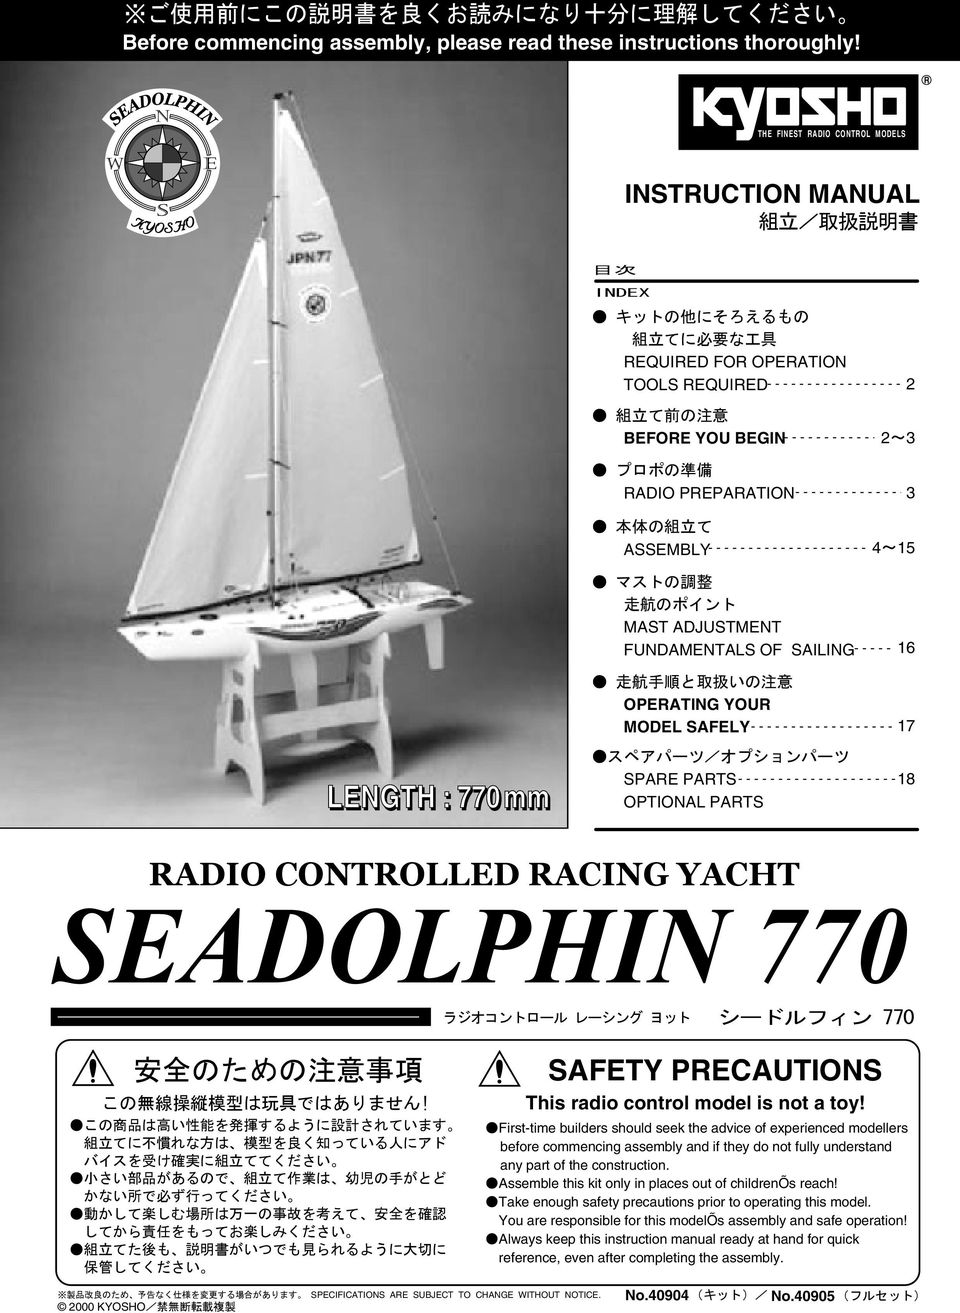 MODEL SAFELY 17 LENGTH : 770 mm SPARE PARTS OPTIONAL PARTS 18 RADIO CONTROLLED RACING YACHT SEADOLPHIN 770 000 KYOSHO SPECIFICATIONS ARE SUJECT TO CHANGE WITHOUT NOTICE.